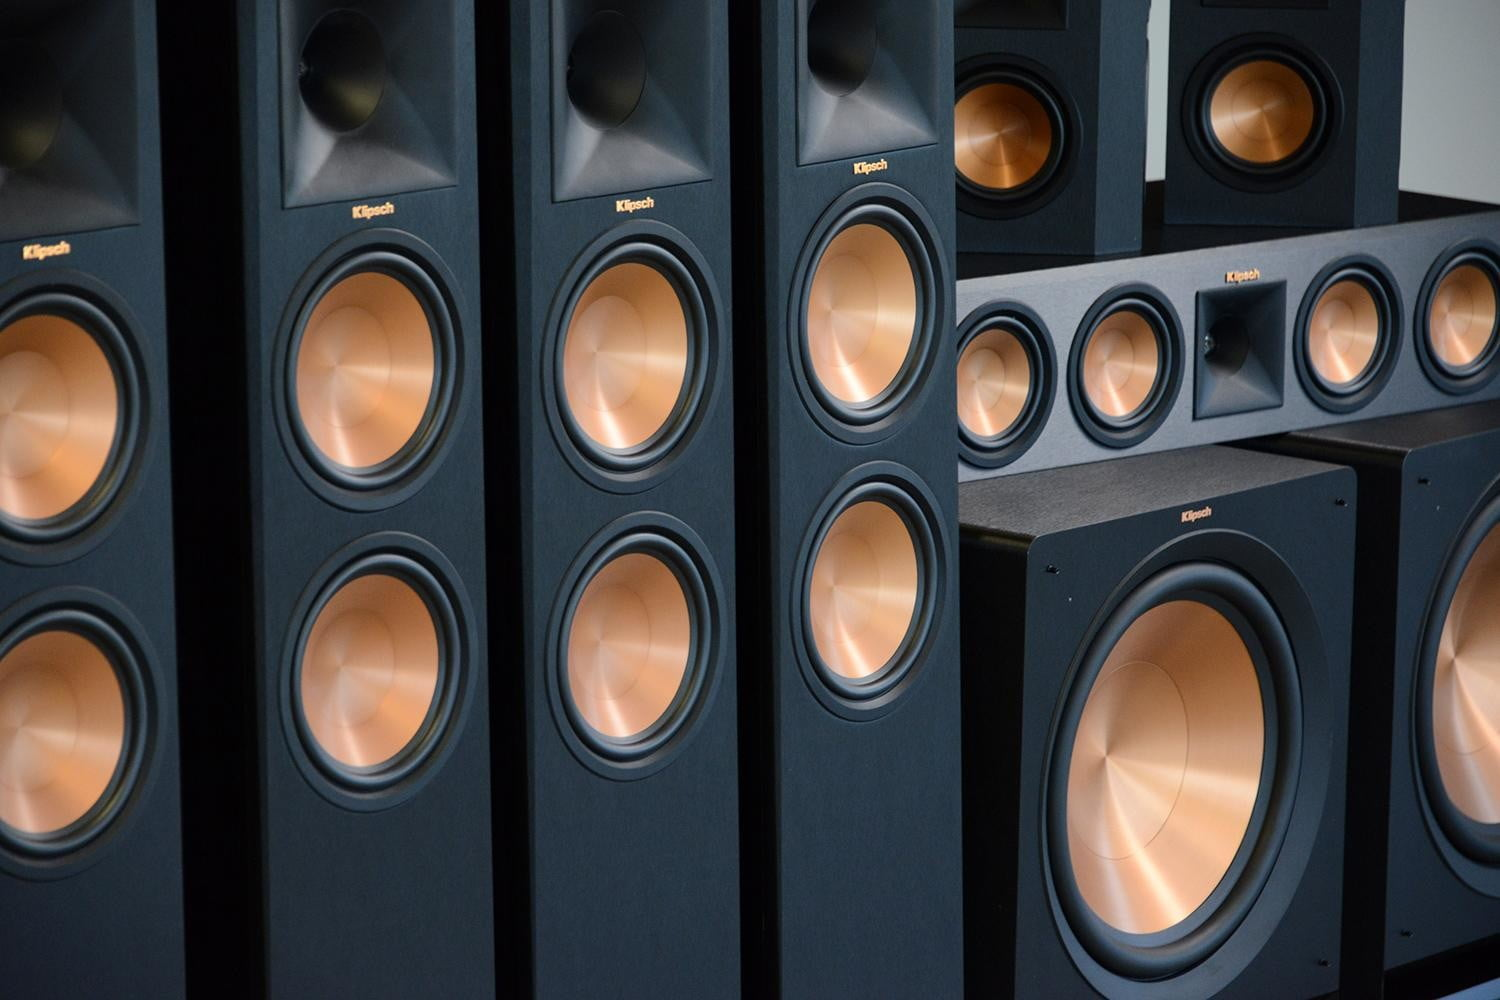 Speakers For Tv Surround Sound And More Home Audio Subwoofer Wiring Configurations Explained Digital Trends